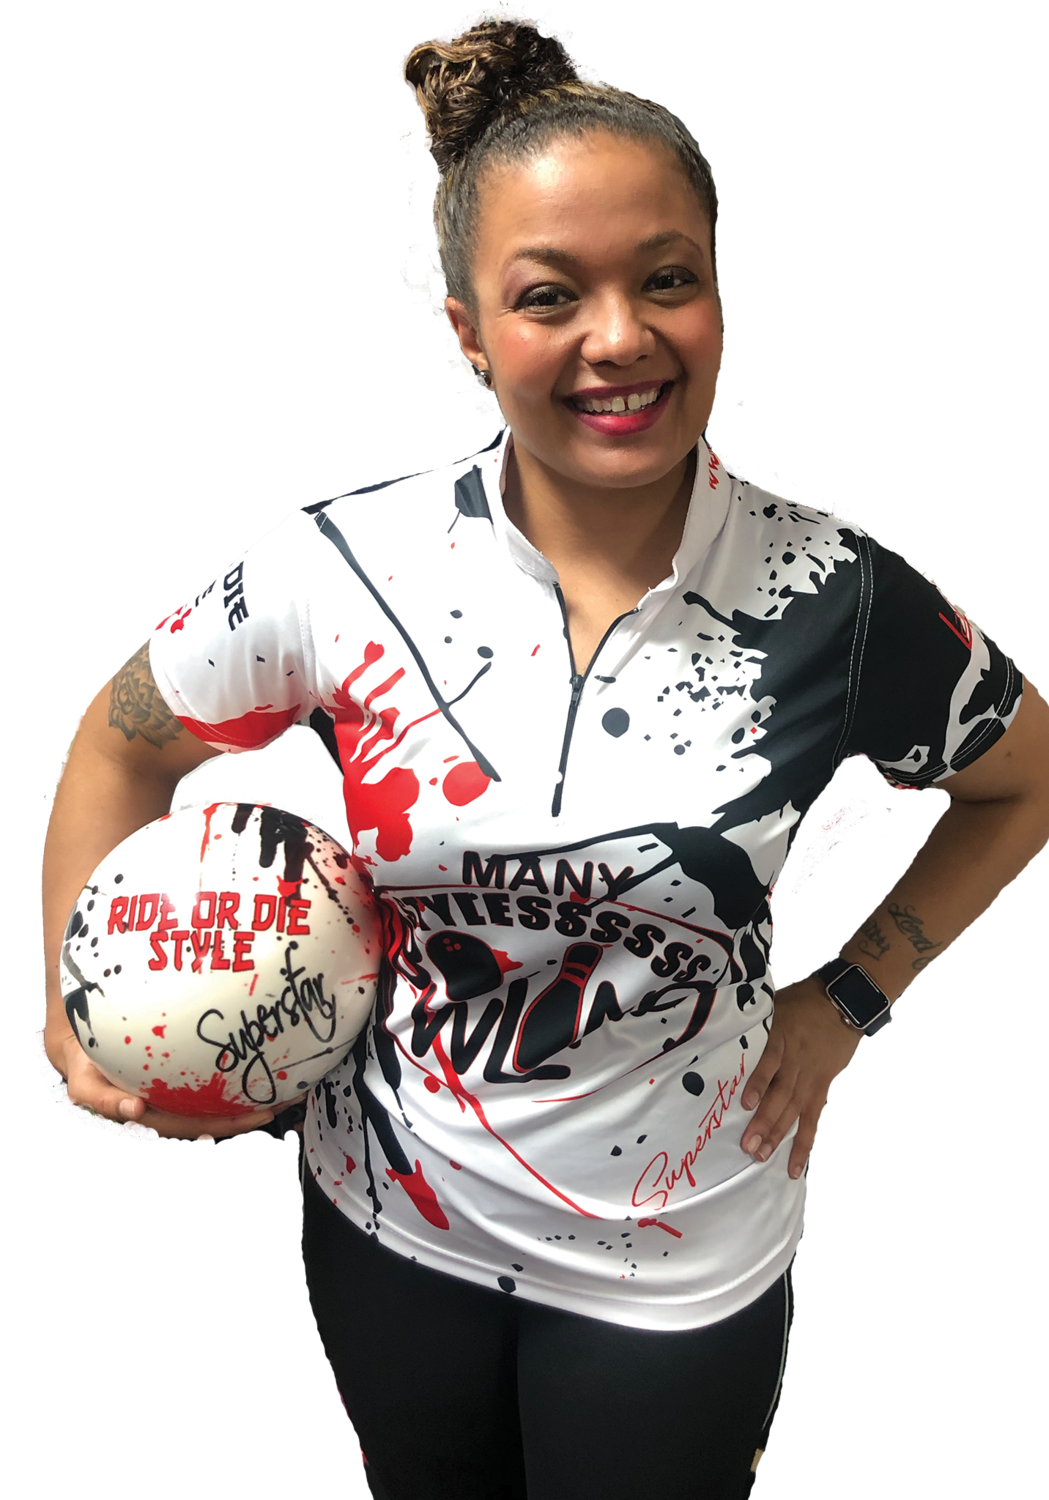 Many Styles RIDE OR DIE Spare Ball